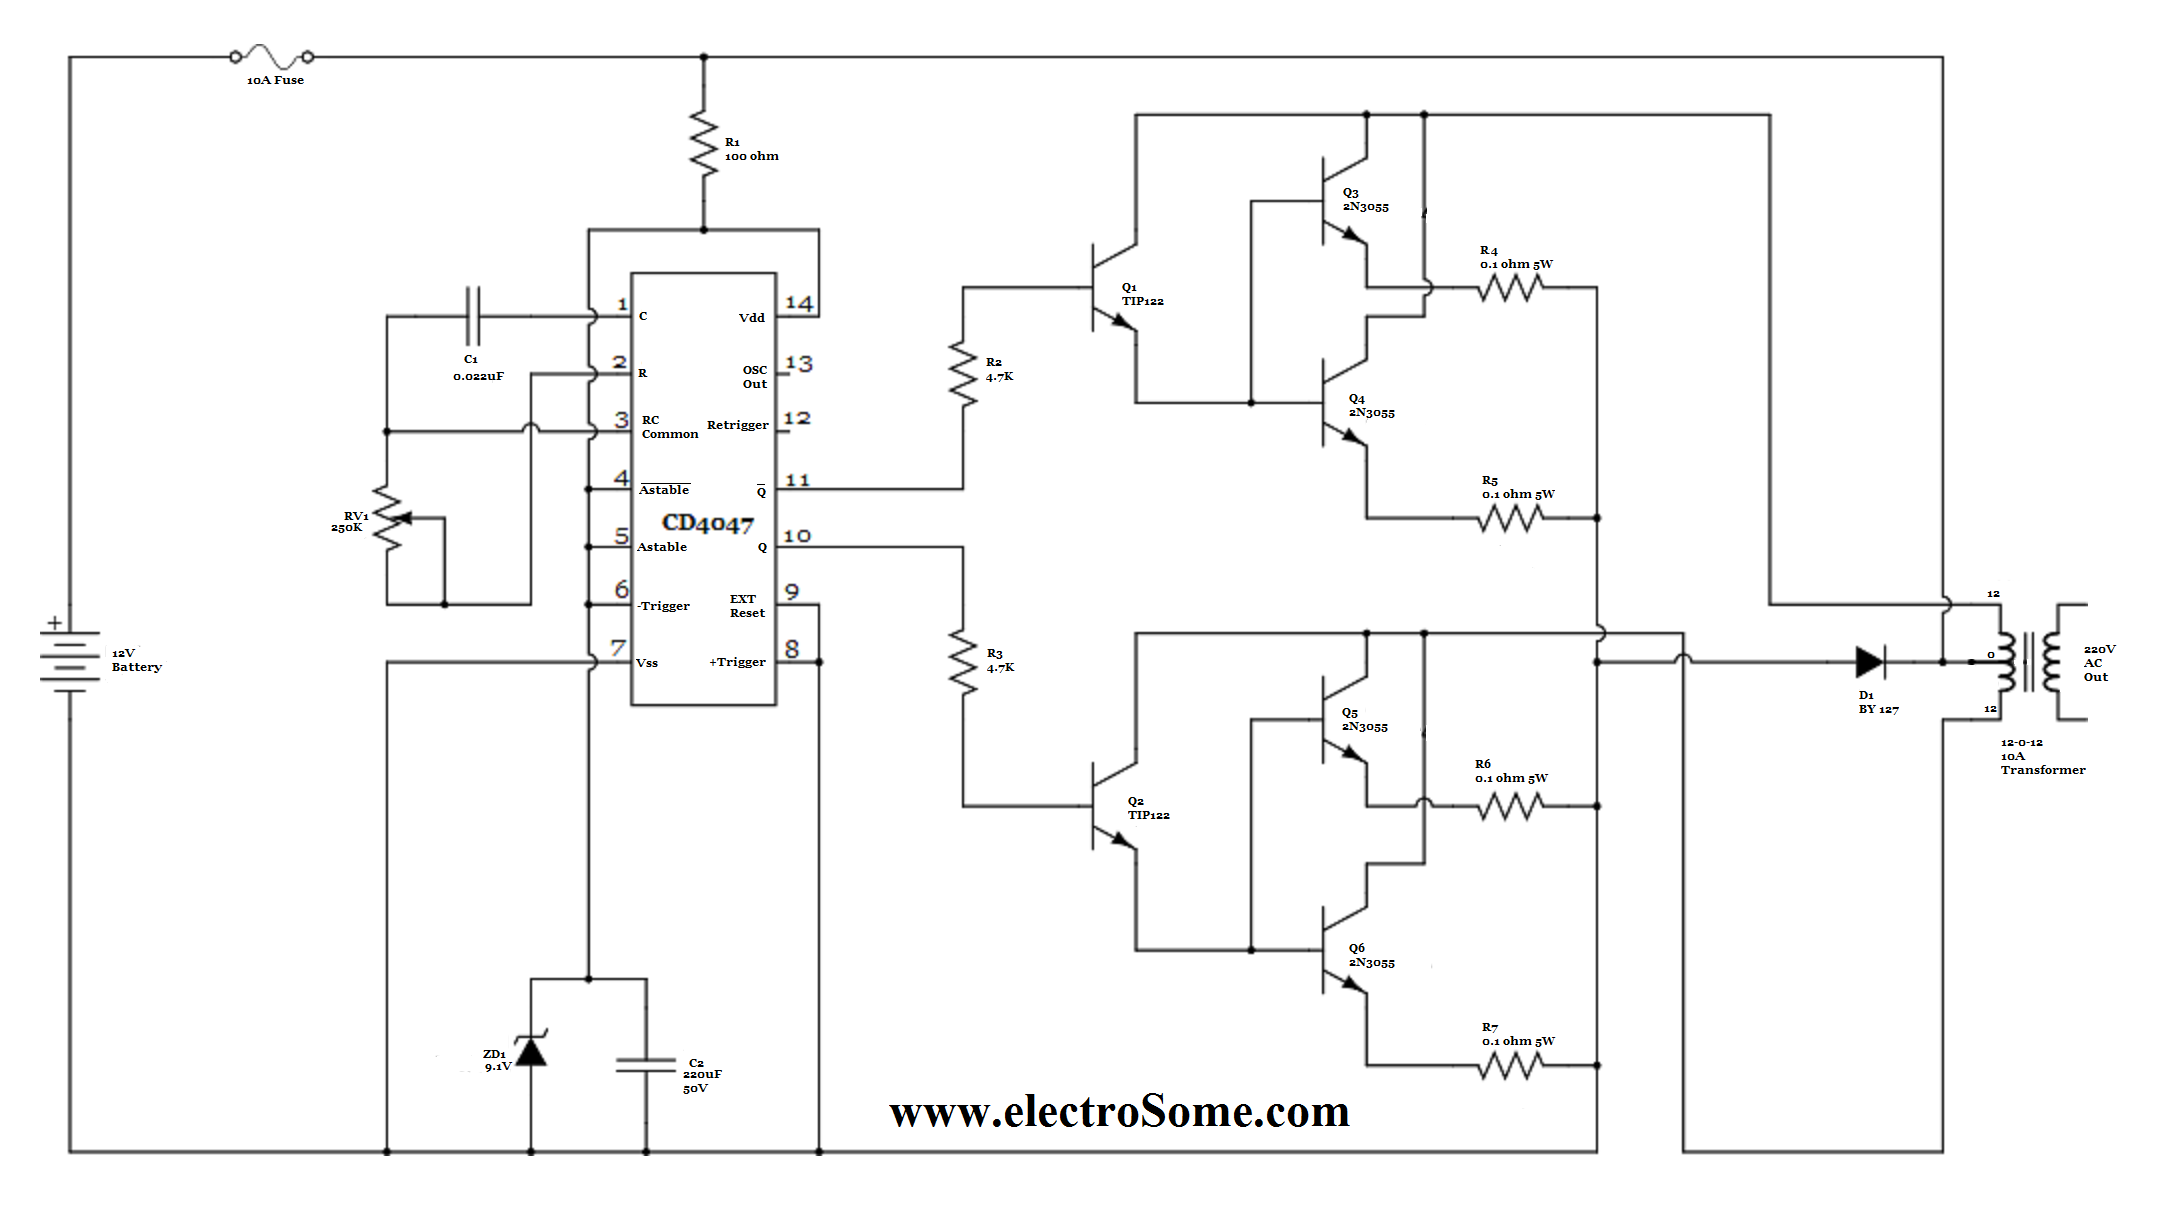 Low Power Square Wave Inverter Circuit Using Cd4047 Oscillator With Fixed Frequency And Variable Duty Cycle Simple